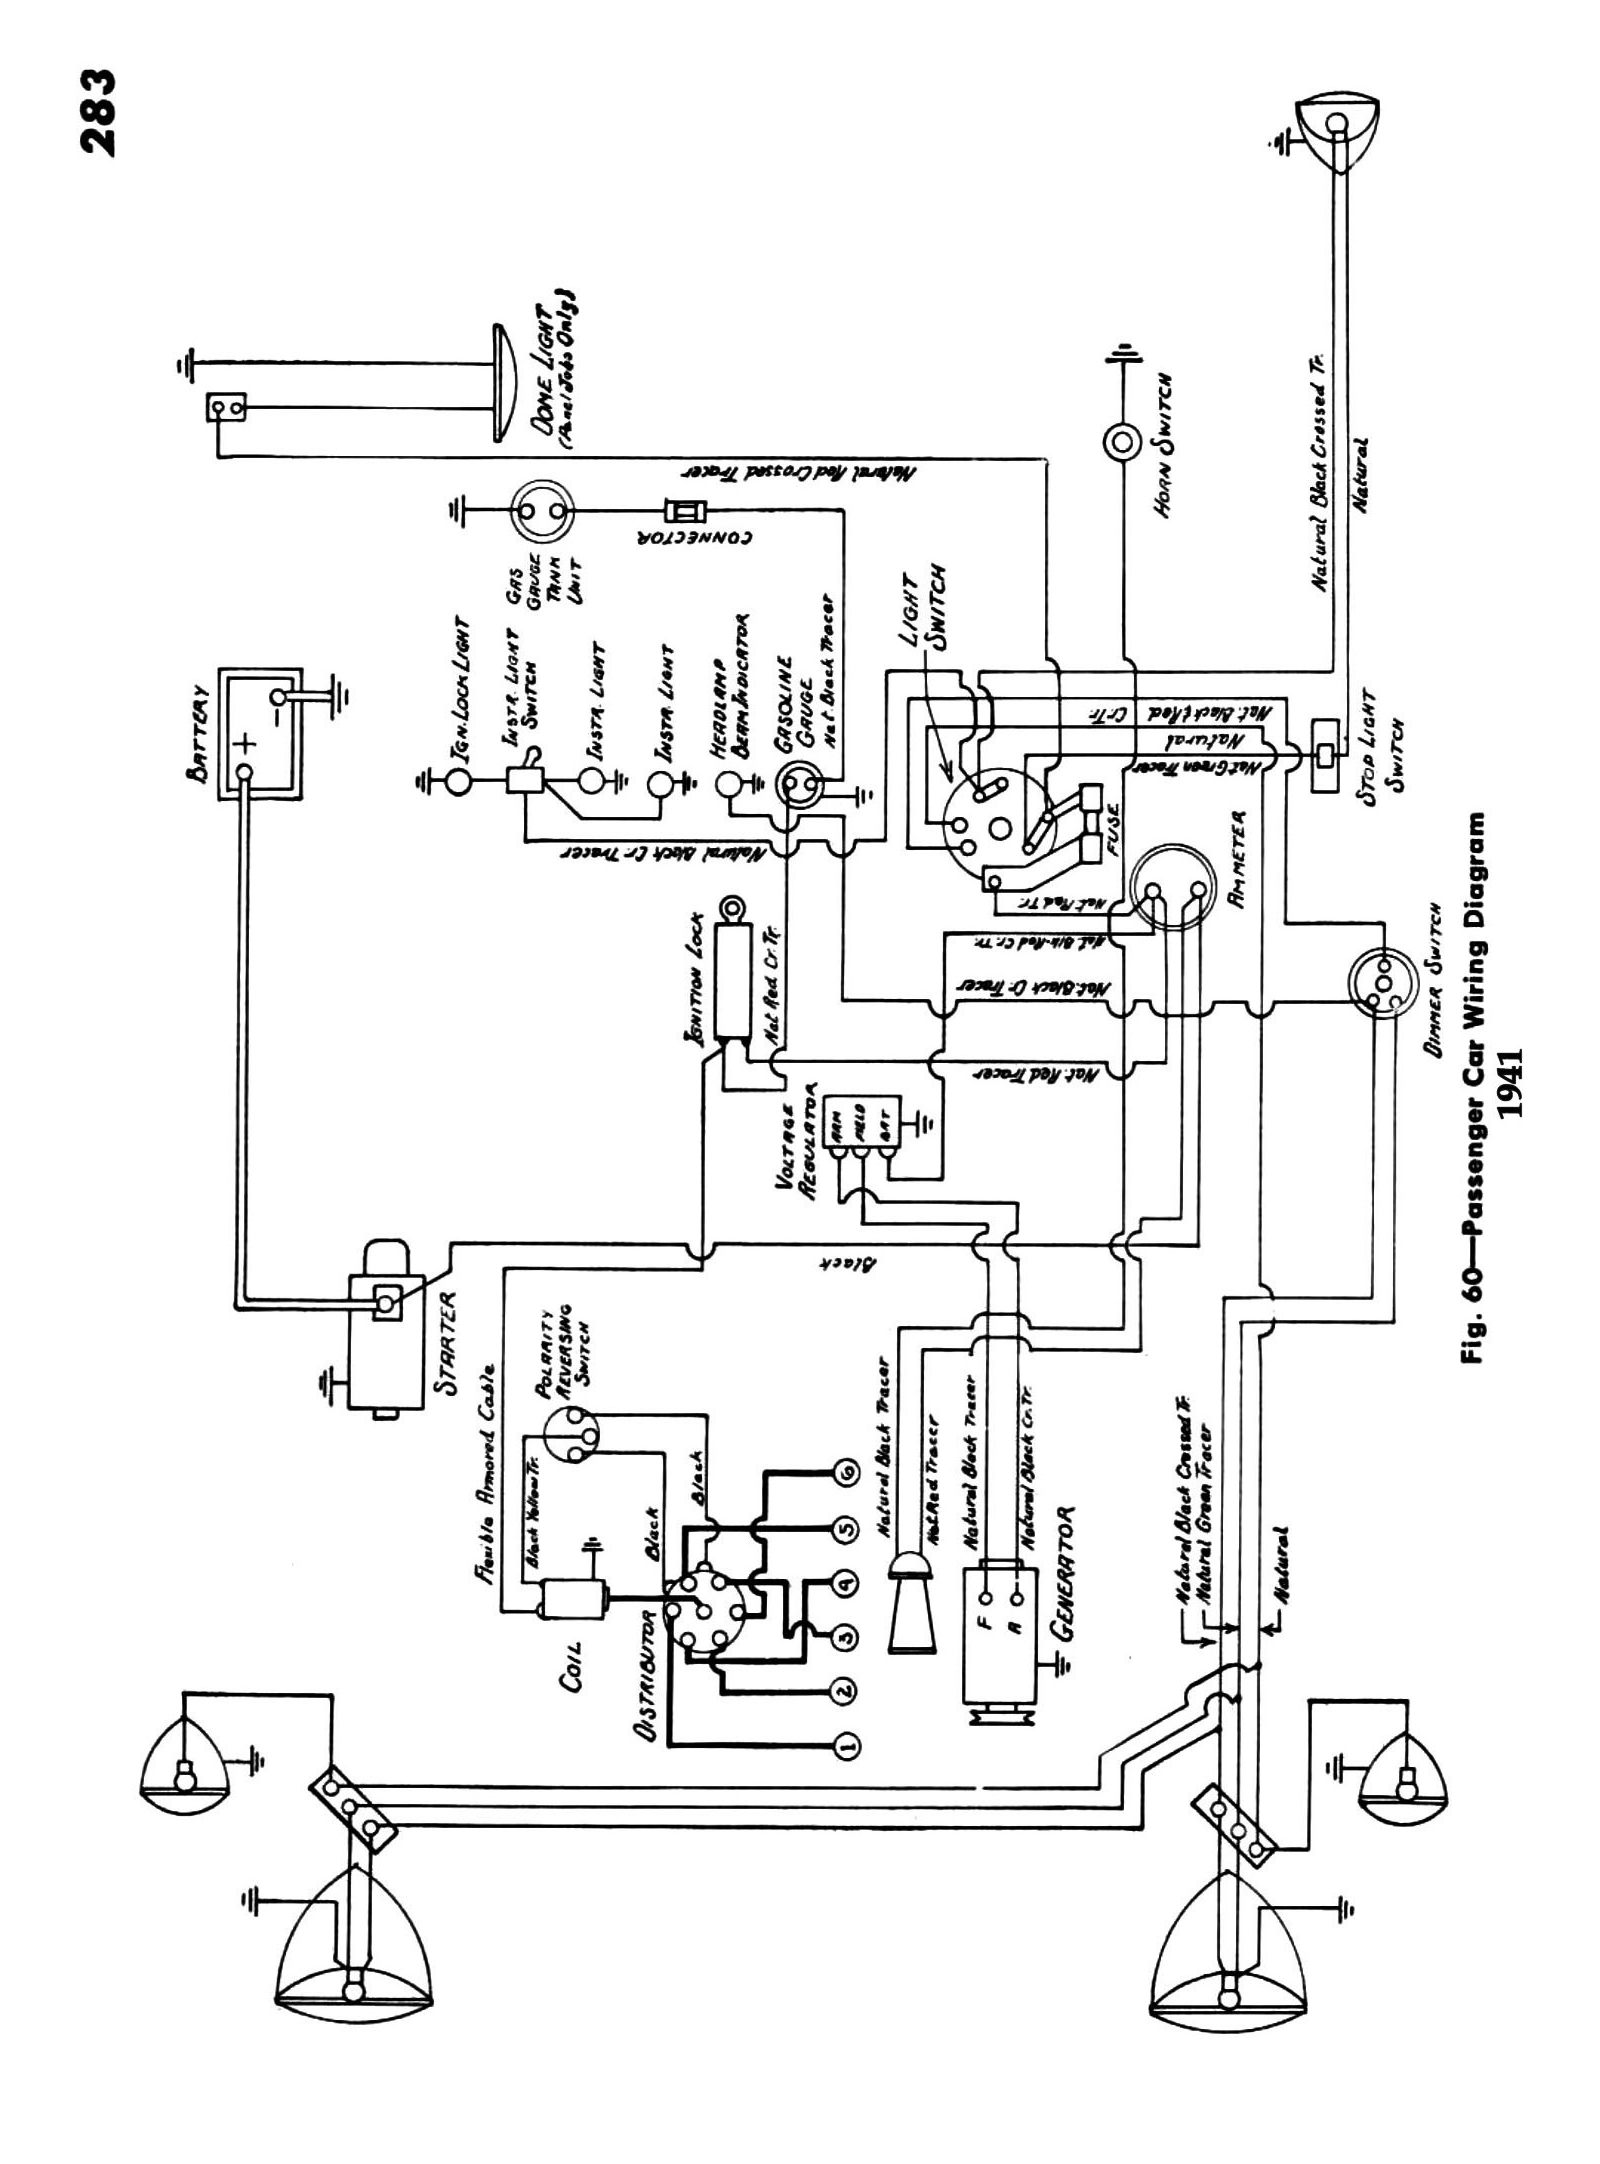 1958 Impala Ignition Wiring Diagram Data 69 Chevrolet 1969 Chevy Truck